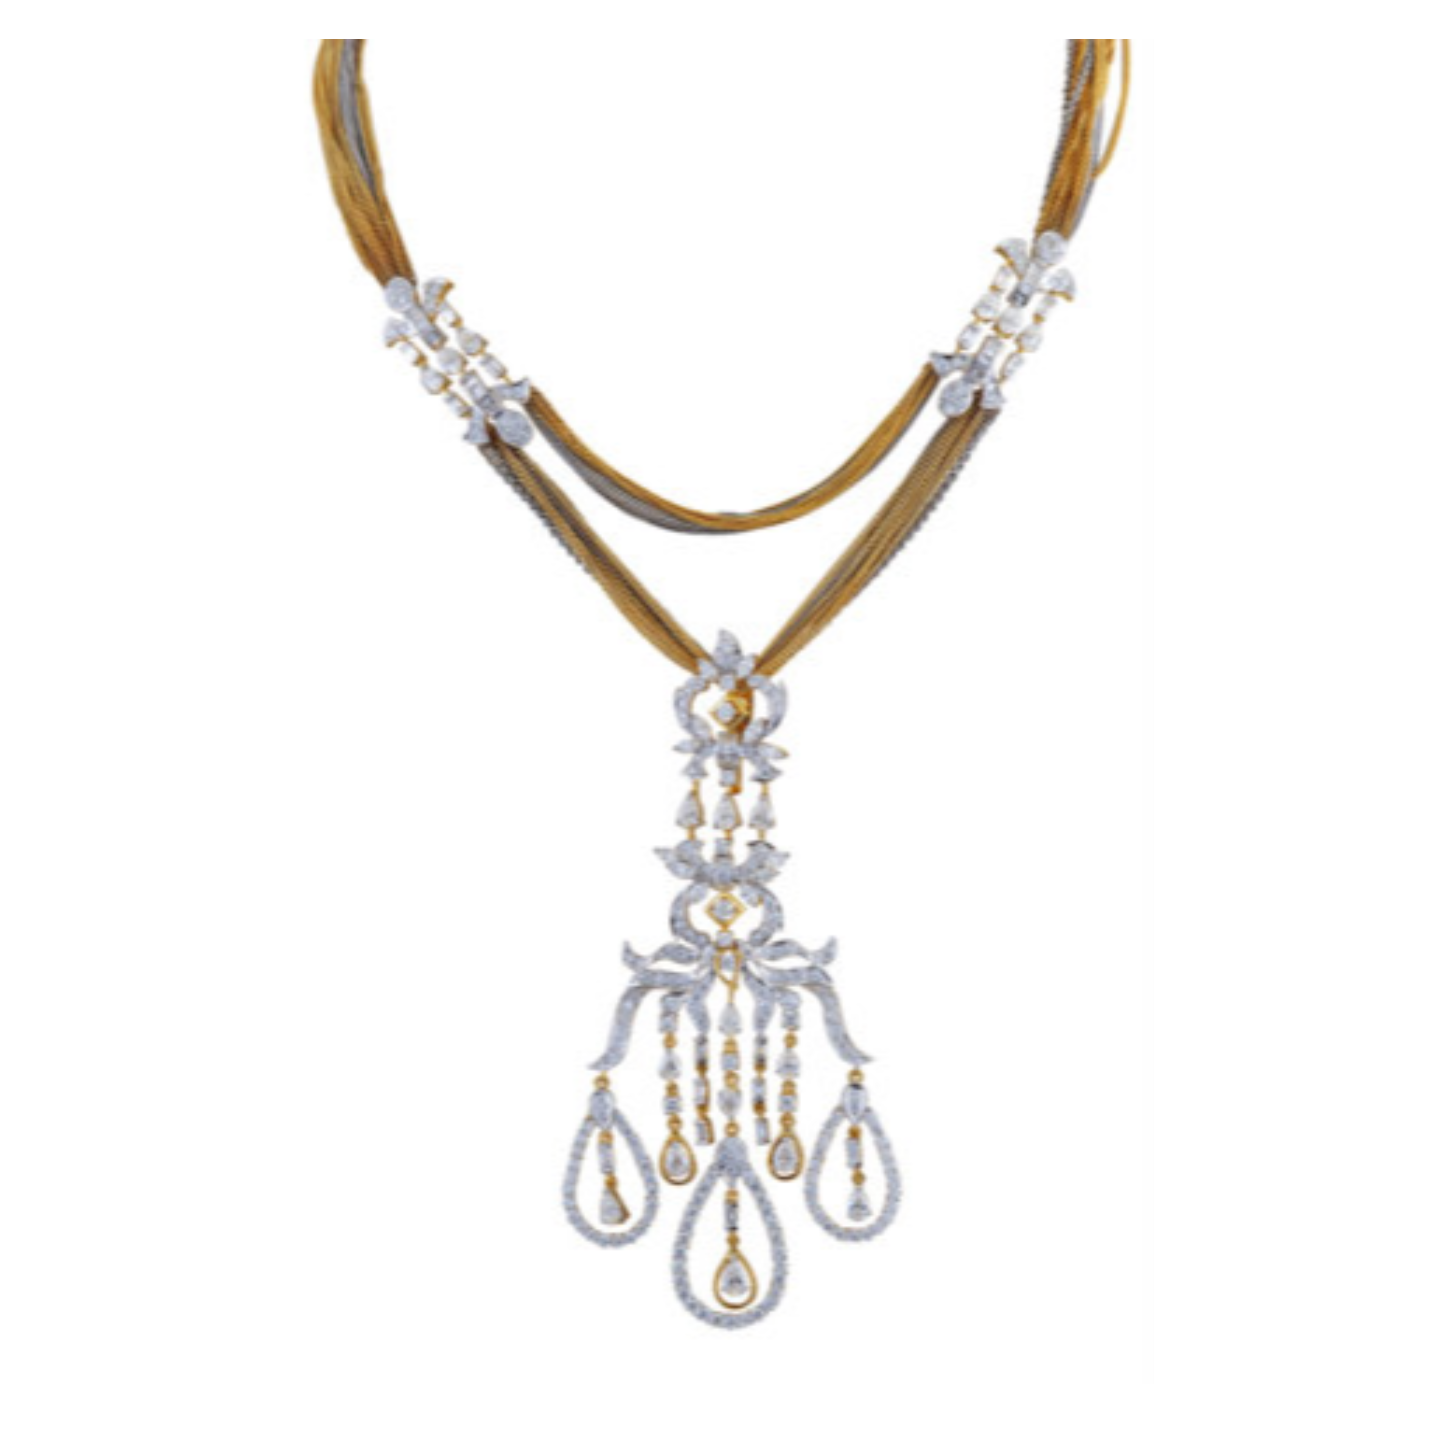 An Elegant yet elaborate diamond pendant necklace in muti hued cluster chains